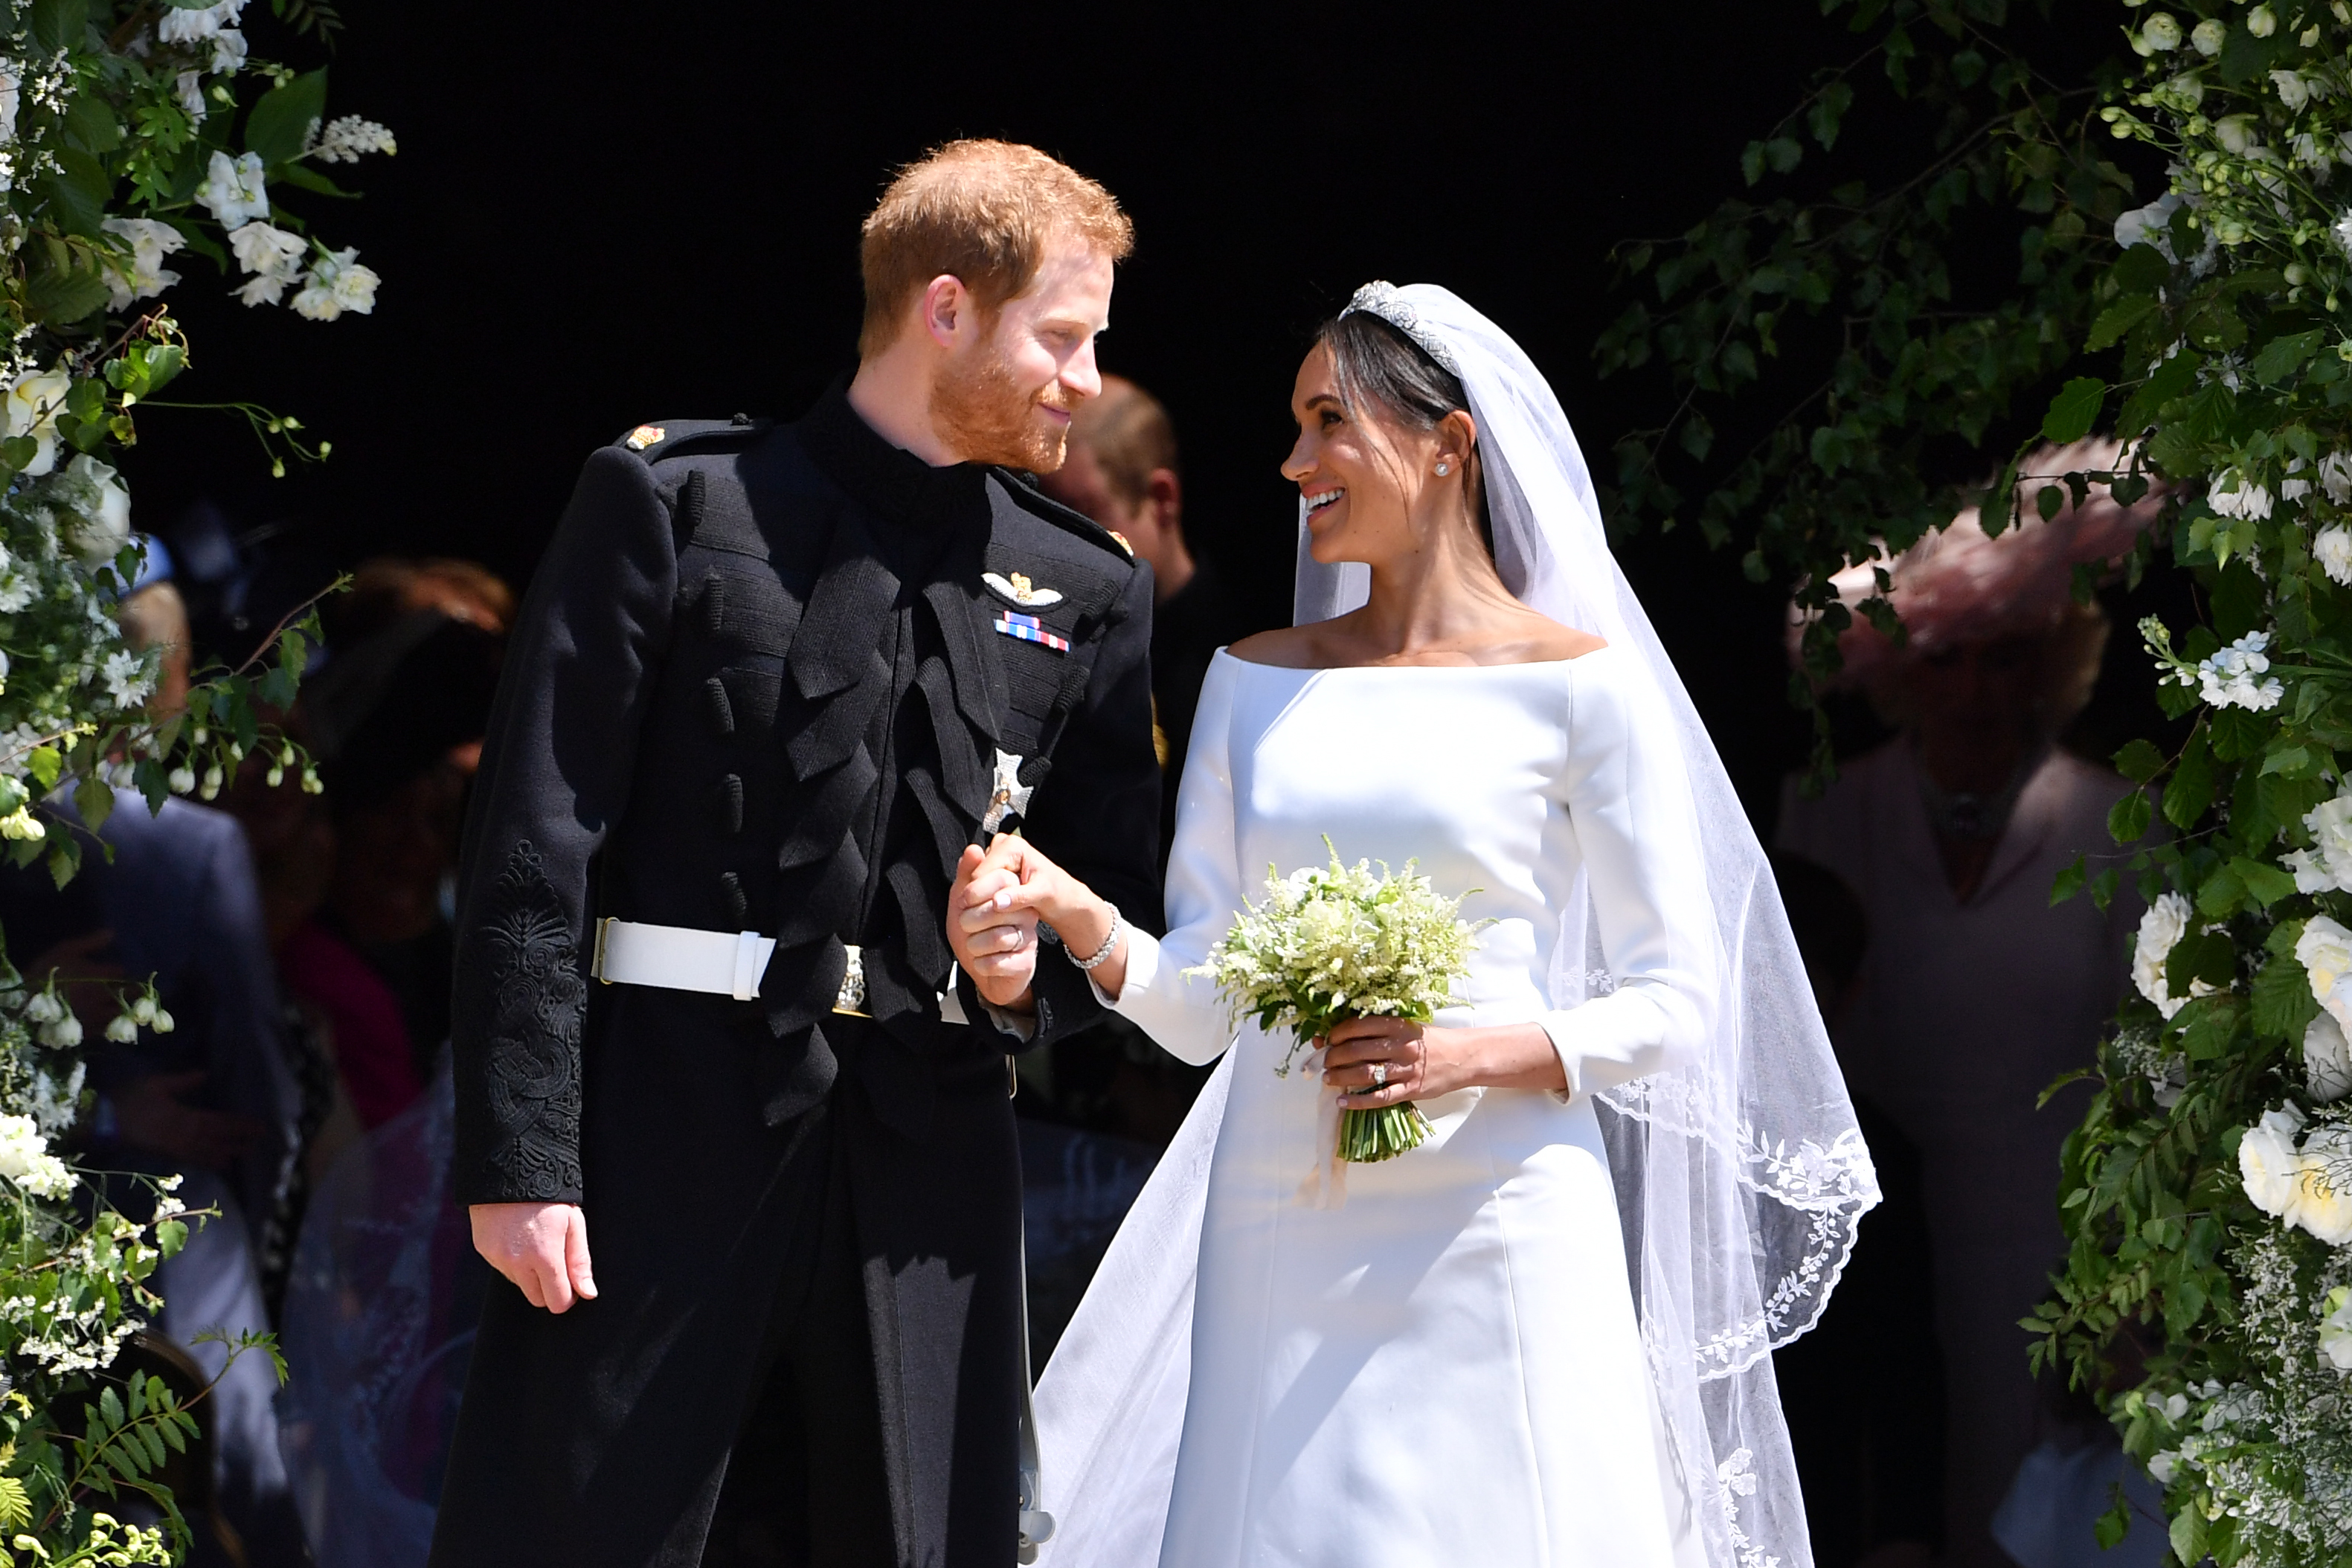 Prince Harry, Duke of Sussex and his wife Meghan, Duchess of Sussex (Source: Getty Images)